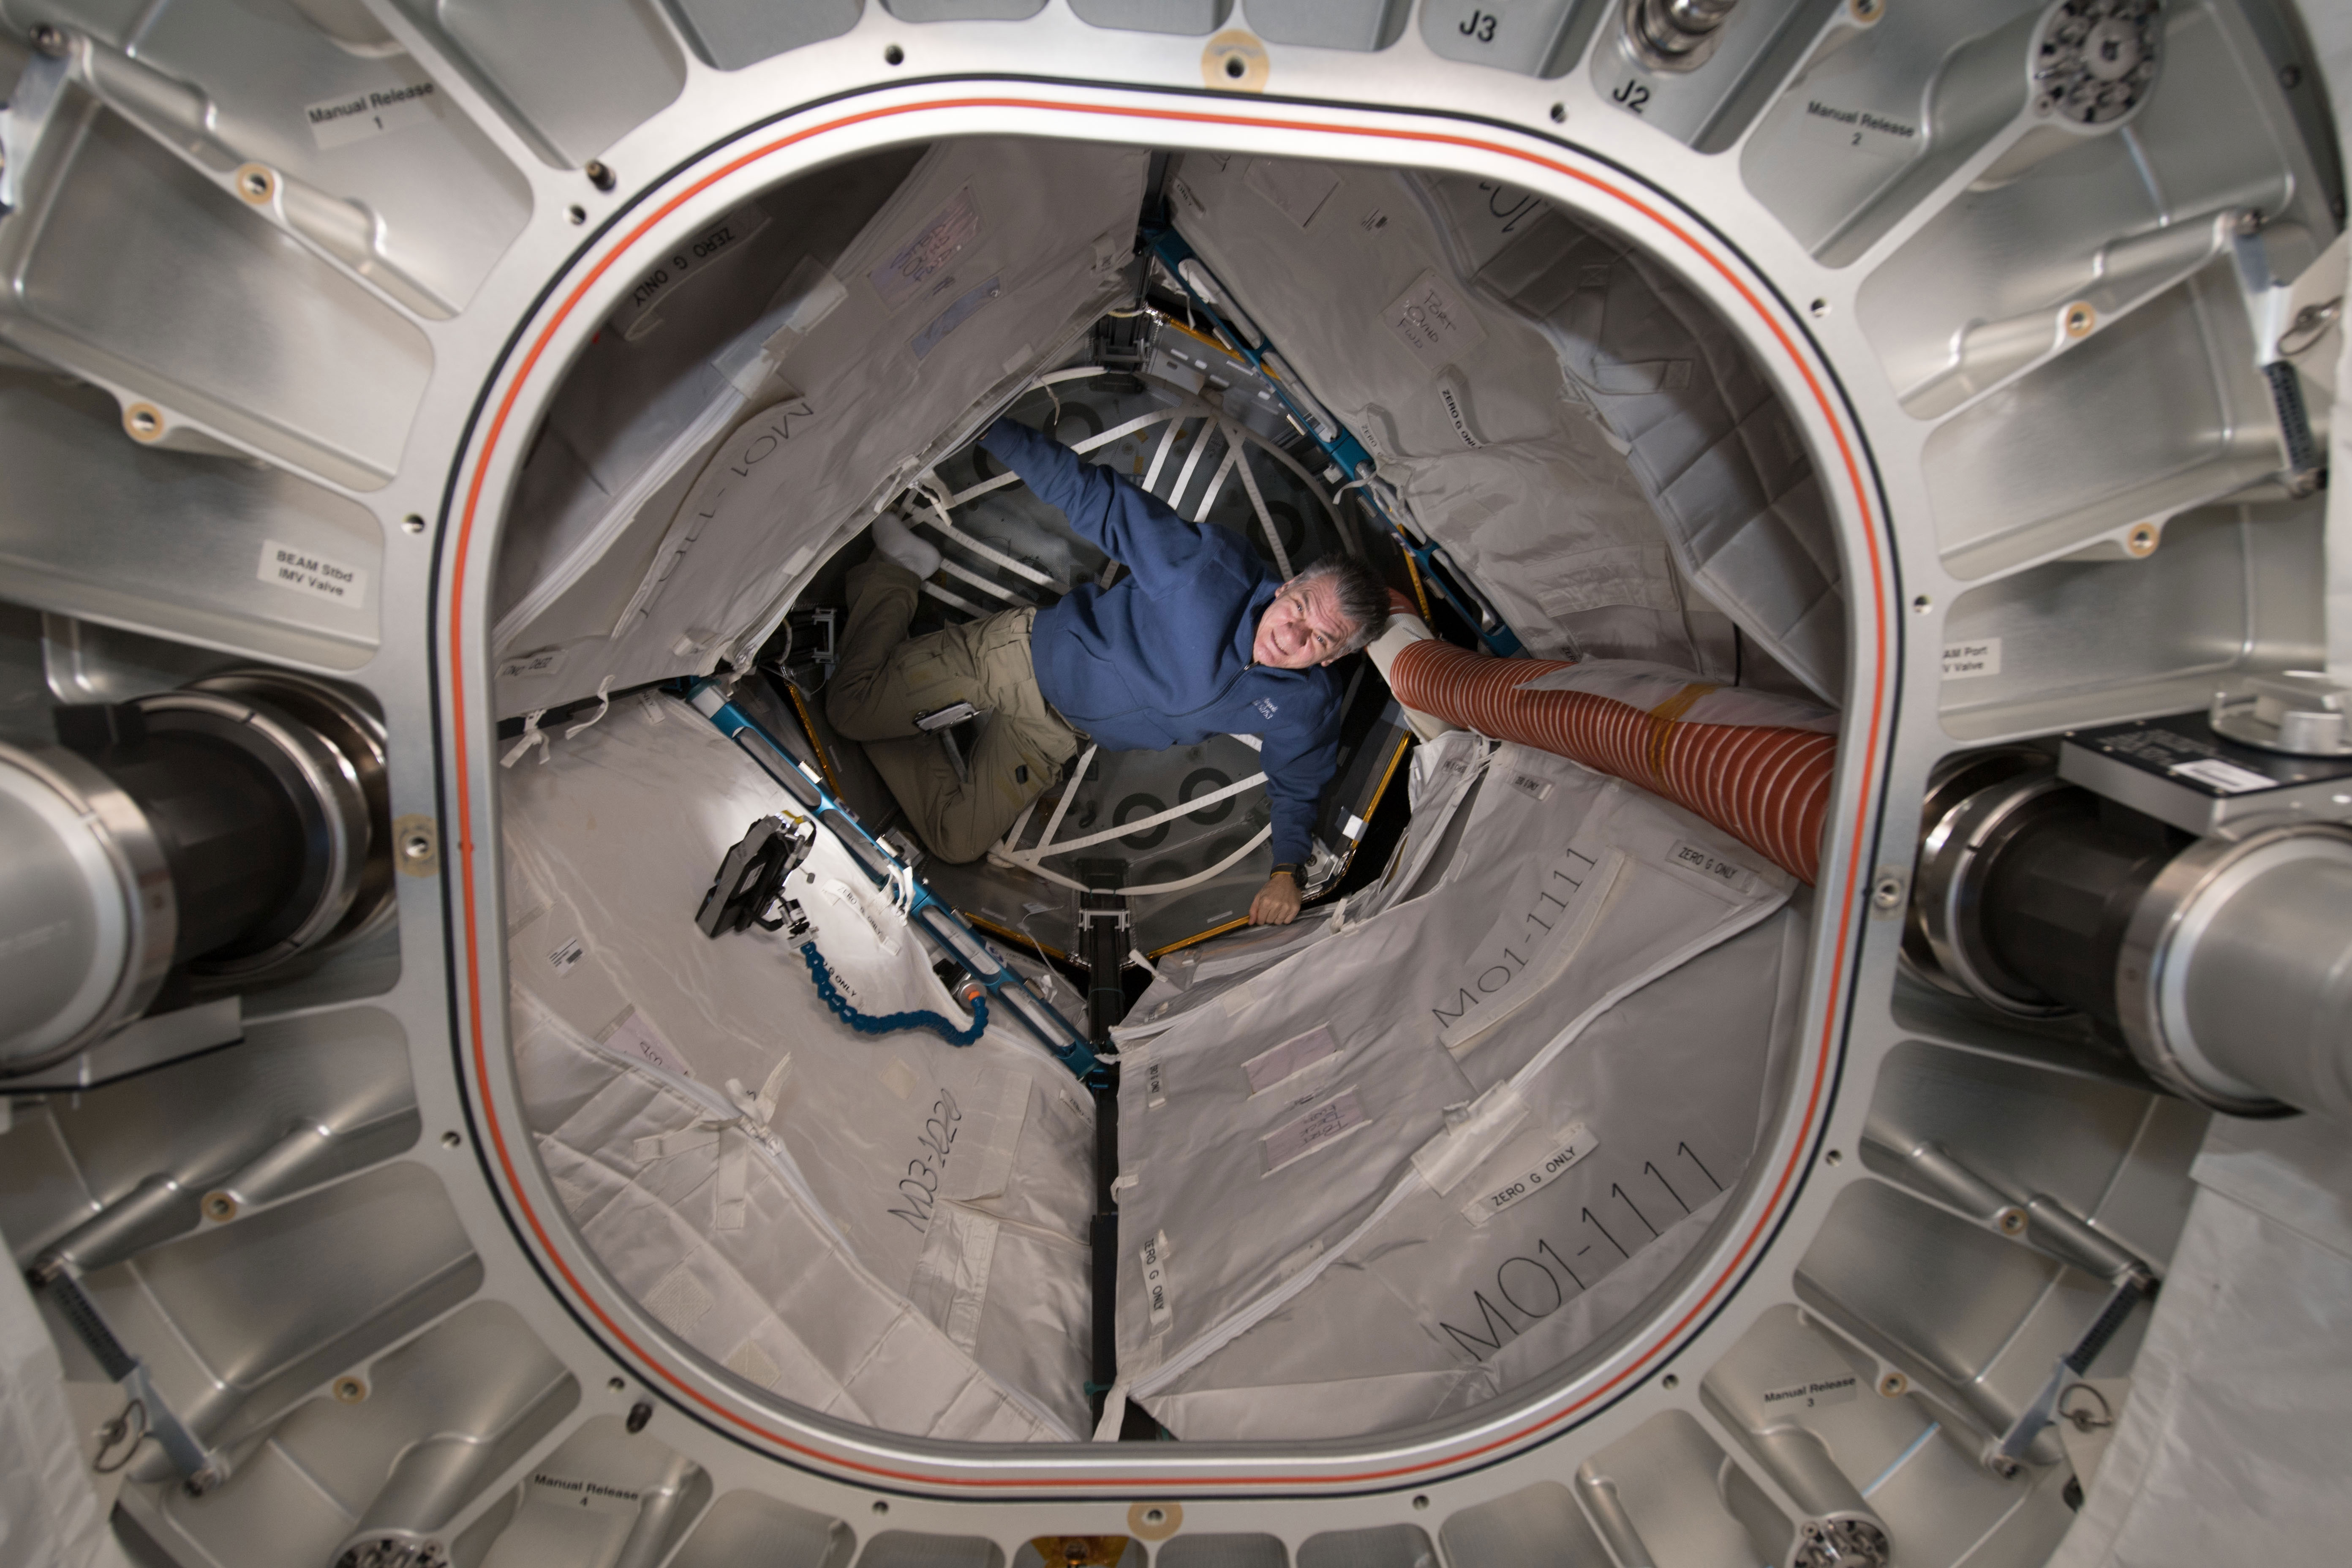 ISS] BEAM to test expandable habitat design - collectSPACE